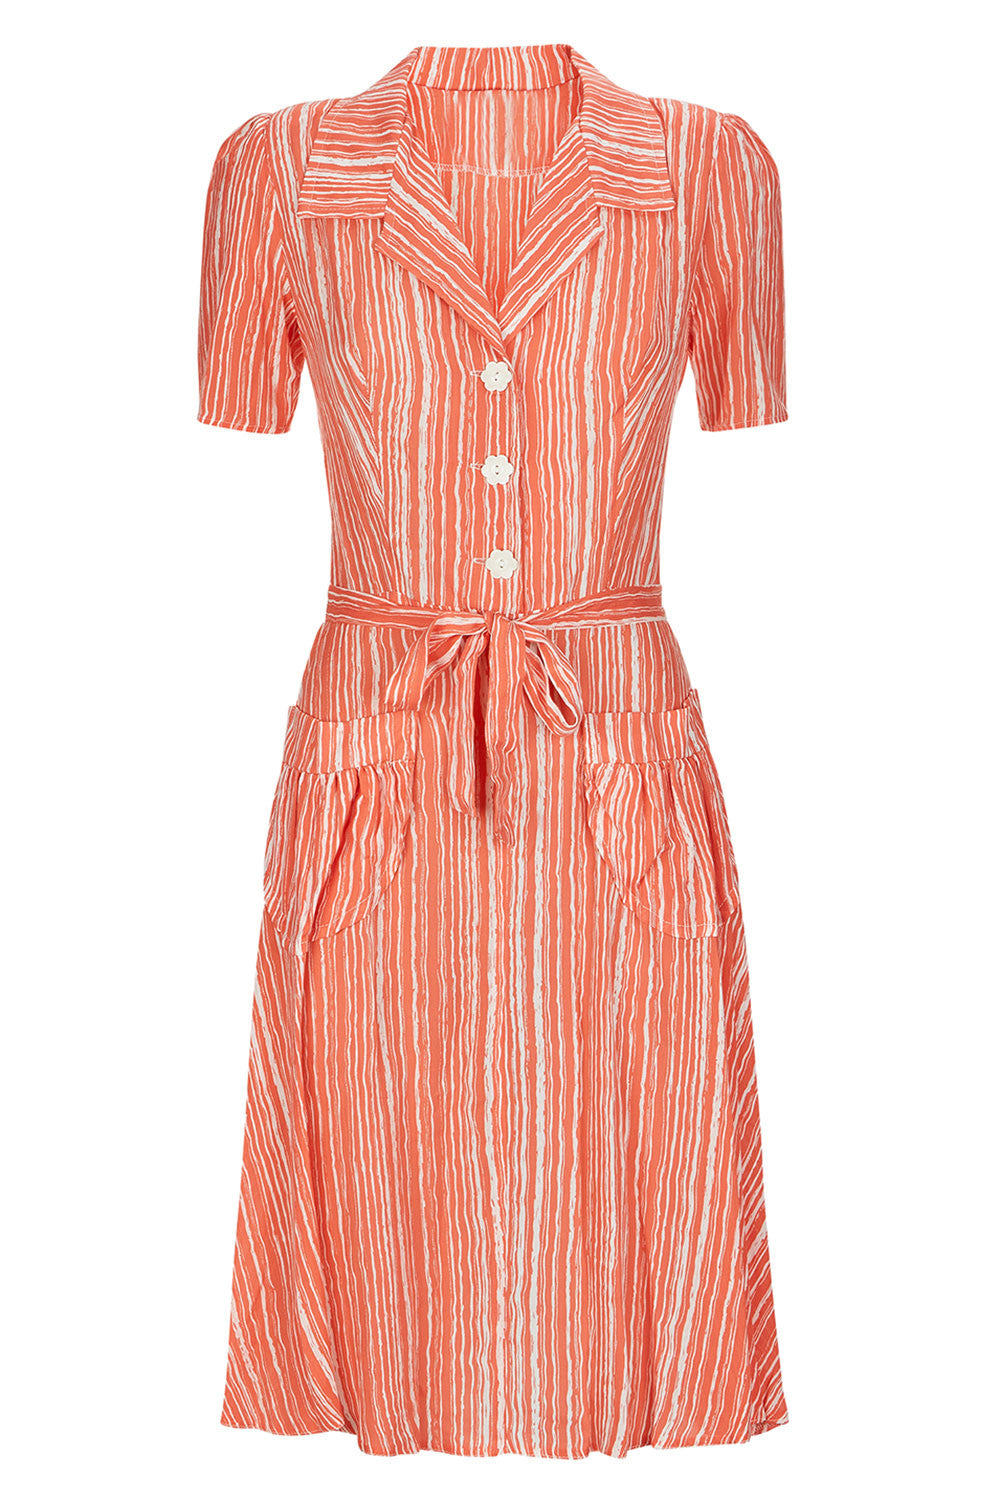 The Homefront Dress - Coral Stripe